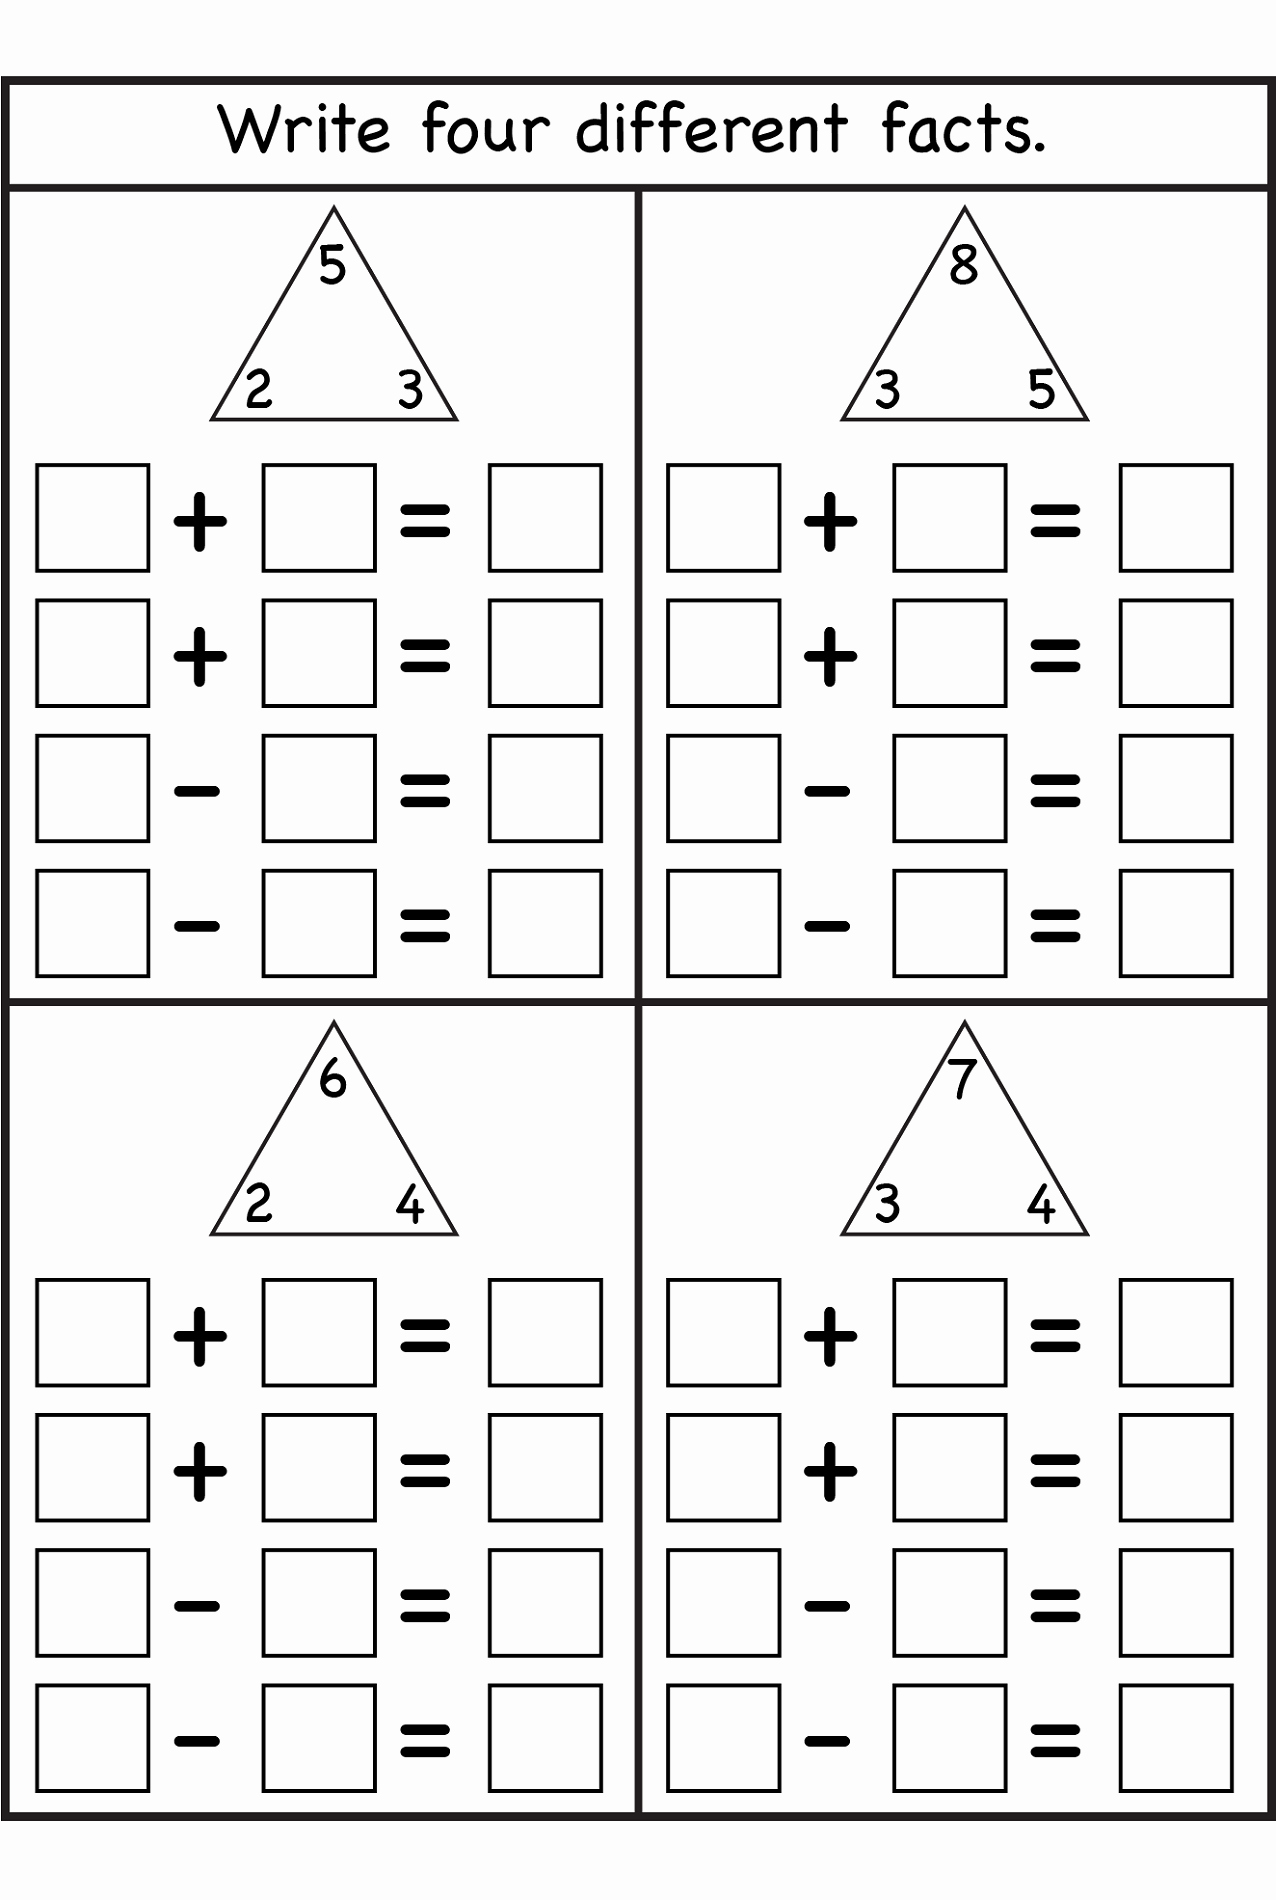 Printable Homeschool Worksheets Picture Of Blank Fact Family Worksheets